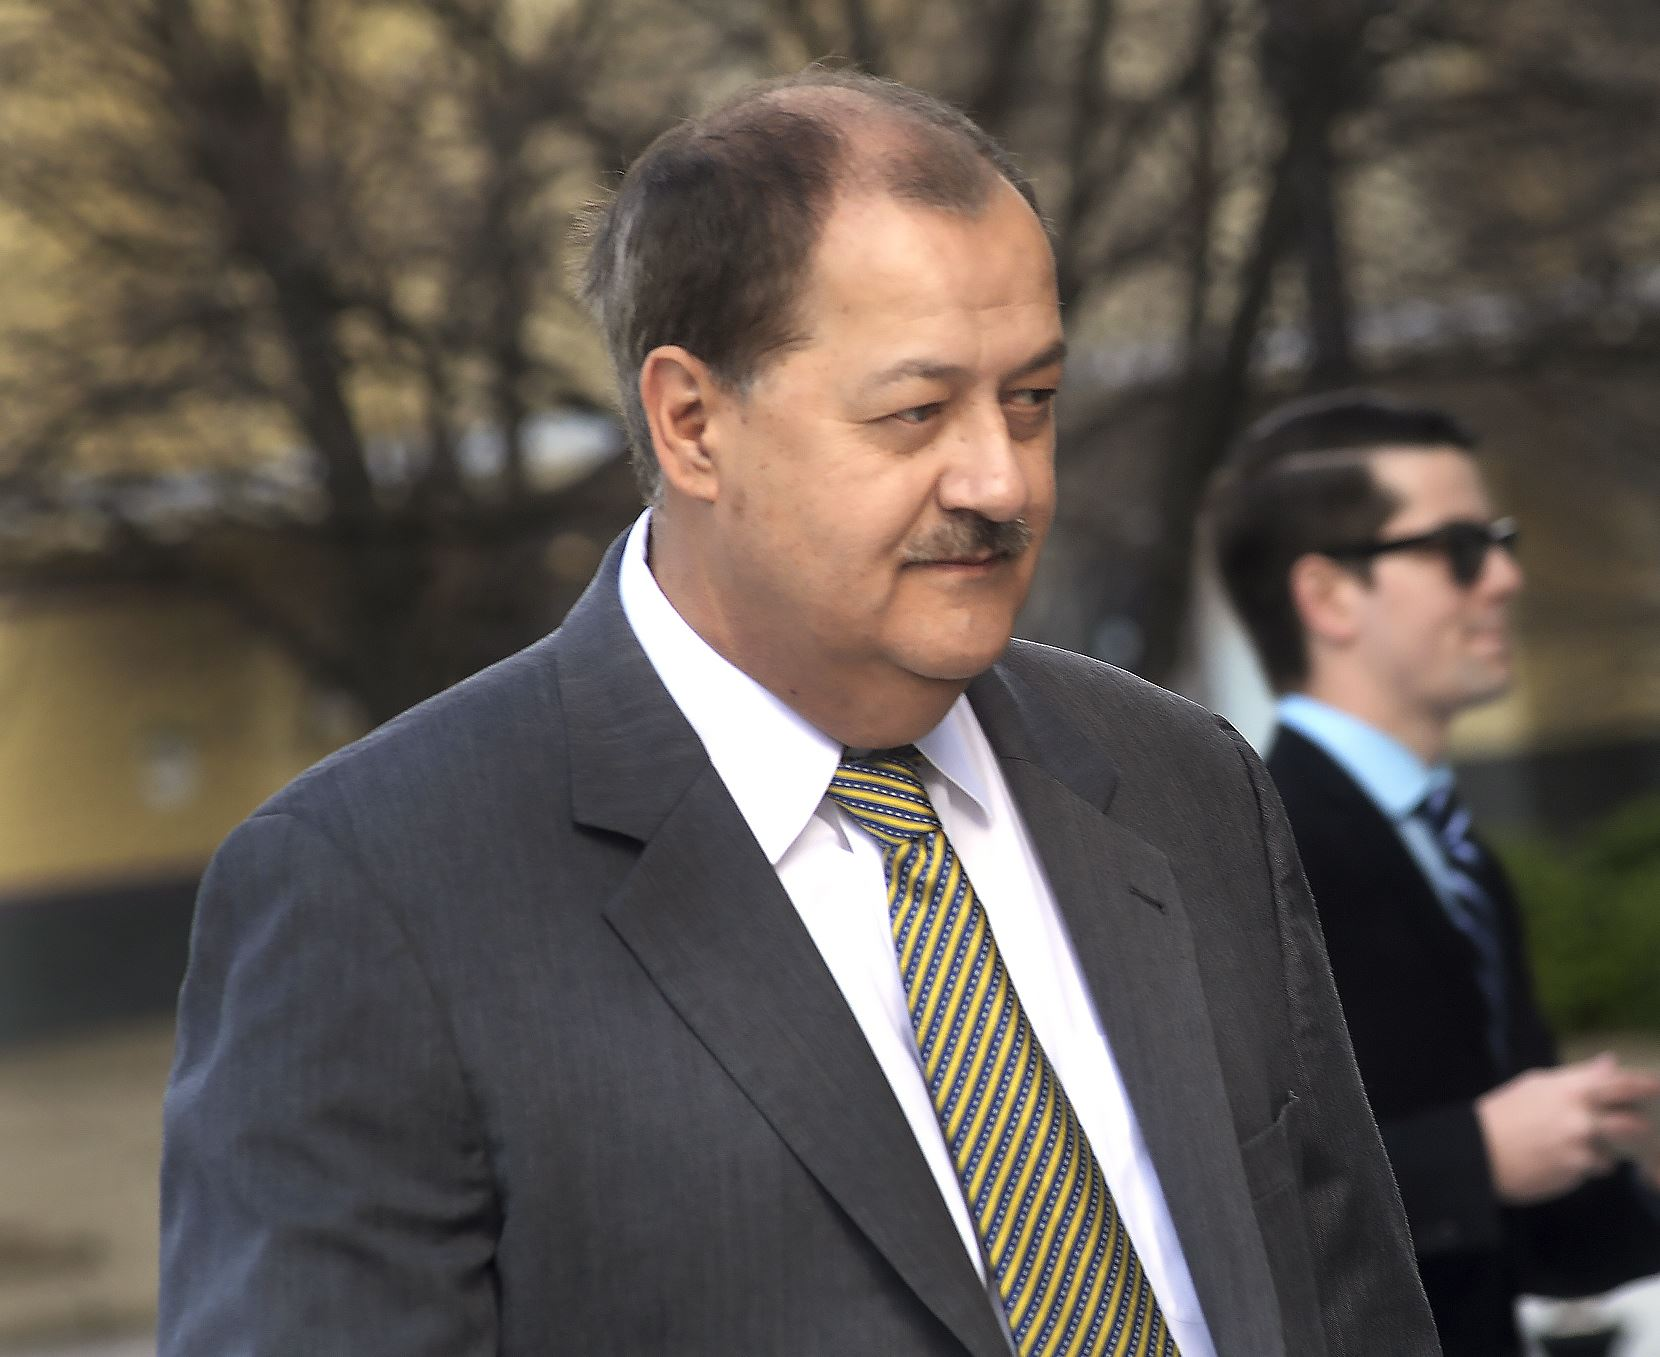 Mine Explosion-Blankenship In a Wednesday, April 6, 2016, file photo, former Massey CEO Don Blankenship is escorted by Homeland Security officers from the Robert C. Byrd U.S. Courthouse in Charleston, W. Va. Blankenship has asked President Donald Trump to resist attempts in Congress to enhance criminal penalties for coal executives who violate mine safety and health standards. Blankenship, who recently was freed from federal prison, also asked the president in a letter Tuesday, May 16, 2017, to re-examine a federal investigation into the nation's worst coal mining disaster in four decades.